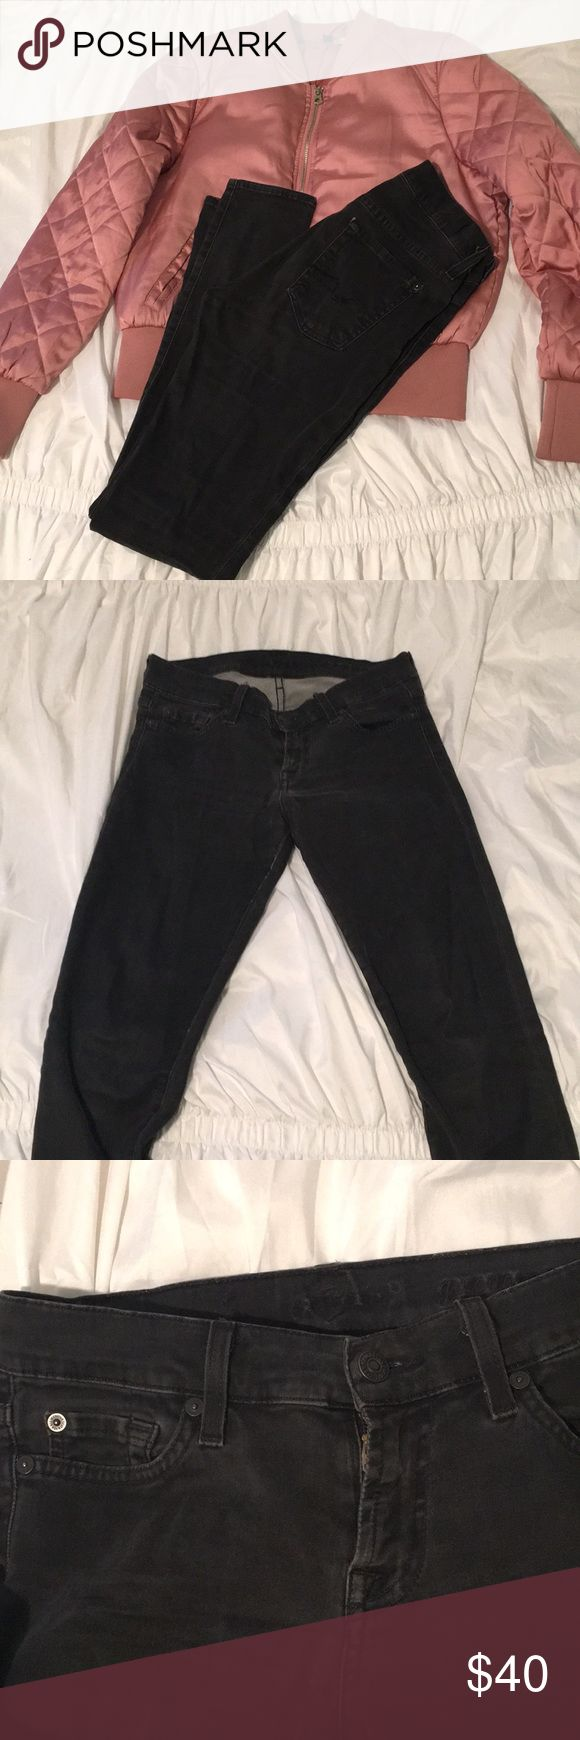 Grey SEVENS jeans✨ Dark Grey SEVENS jeans, super stretchy! They're on the low rise type of fit. Size 26 (Listed as UO for exposure) Urban Outfitters Jeans Skinny